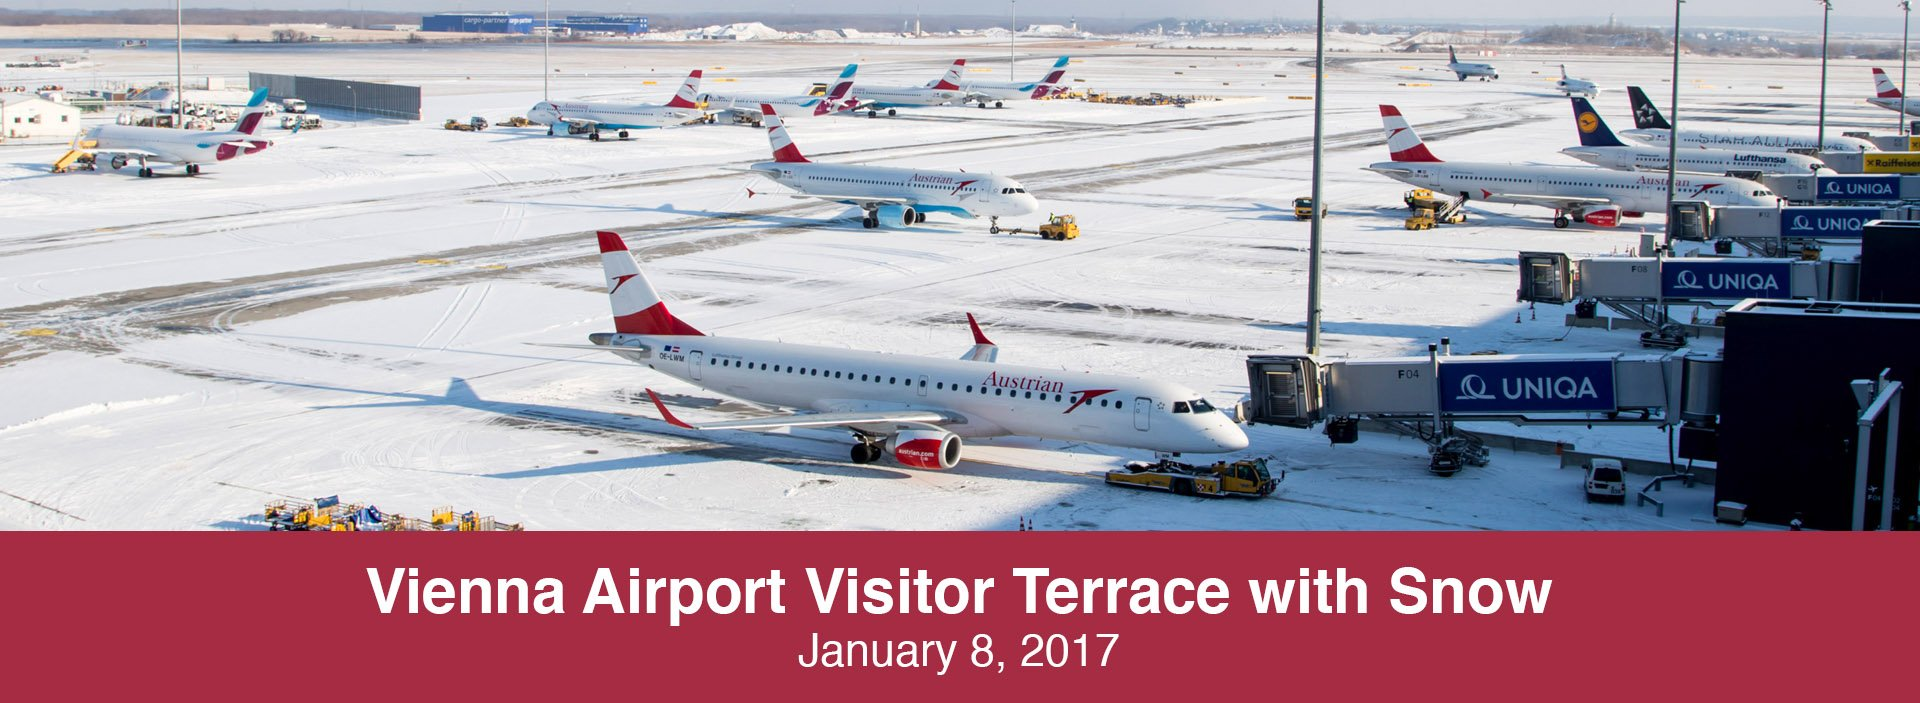 Spotting Report: Vienna Airport Visitor Terrace